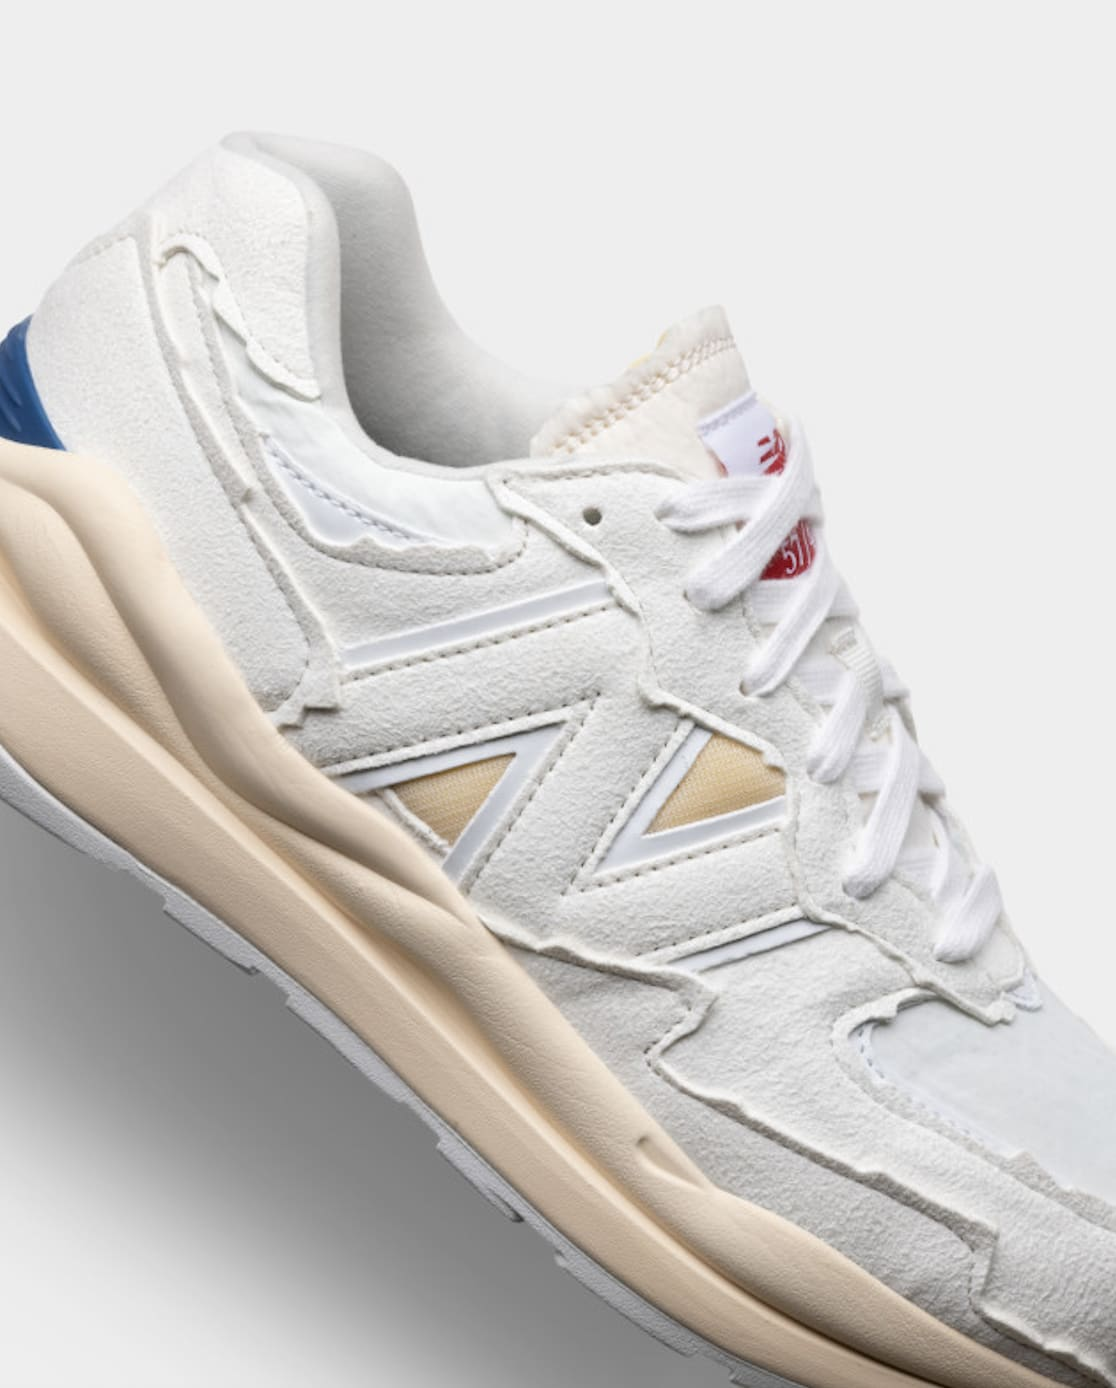 New Balance 57/40 'Refined Future' Lateral